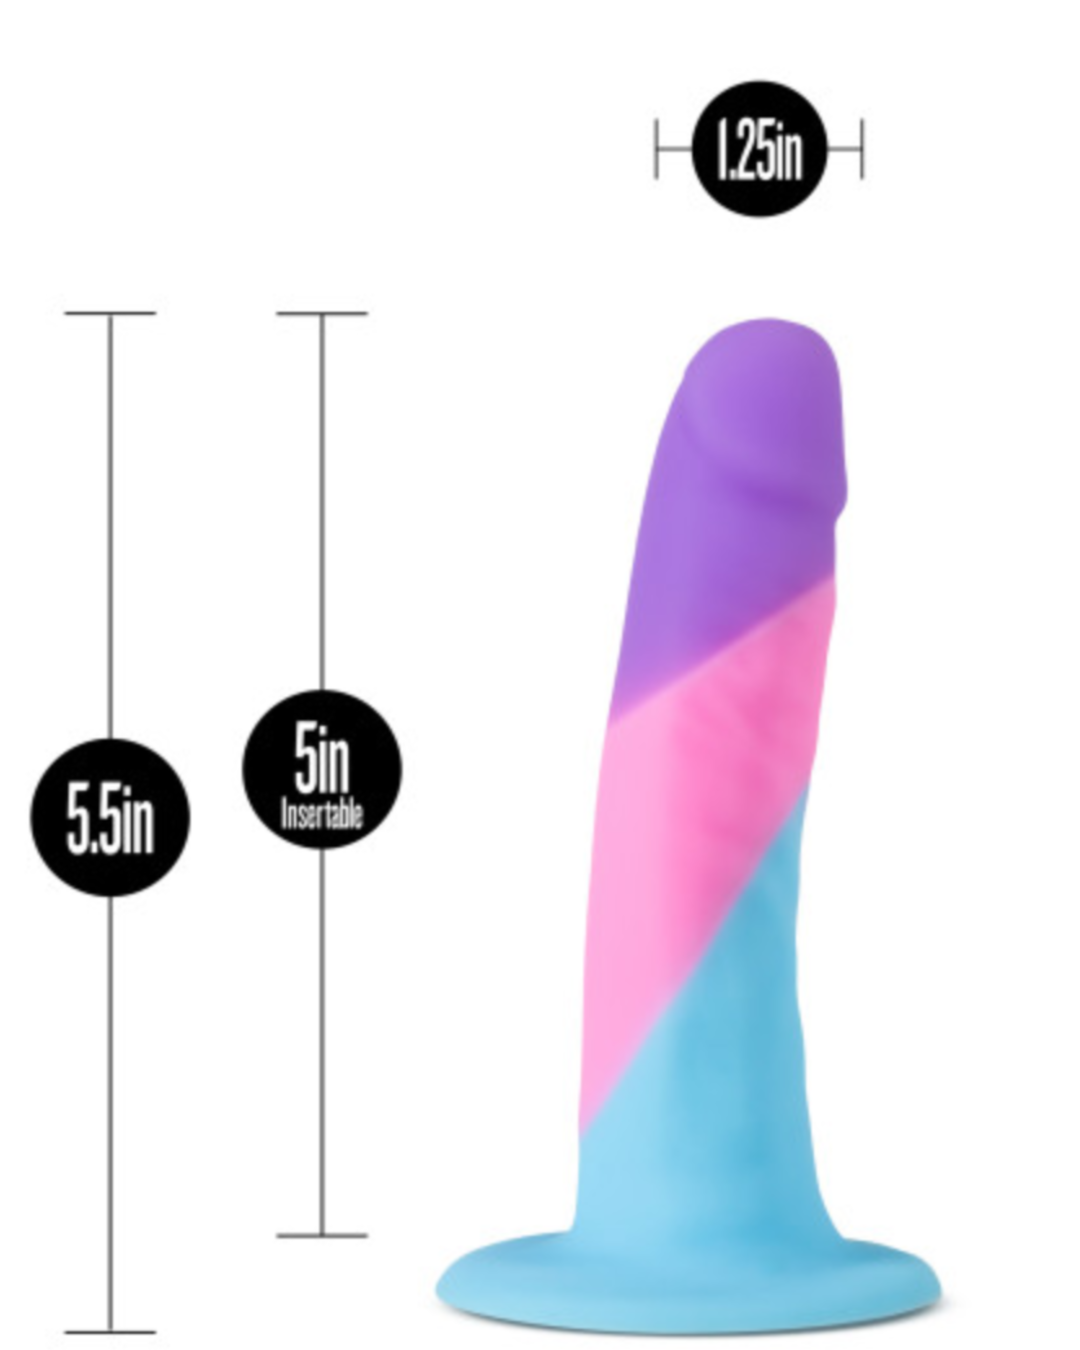 Avant D15 Vision of Love 5.5 Inch Dildo by Blush Novelties measurements